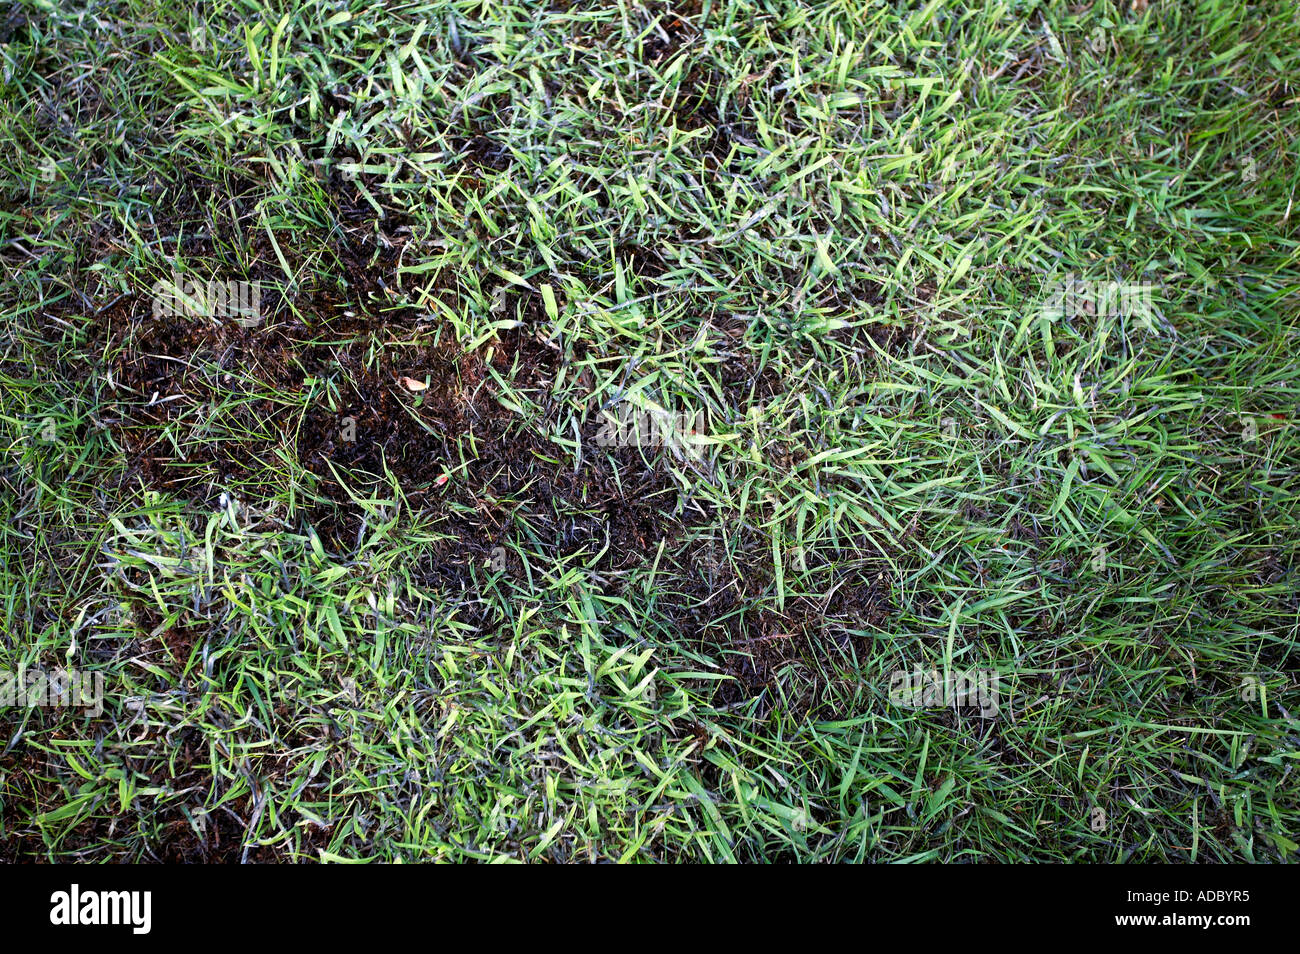 Photograph demonstrating the use of lawn sand in spring to kill moss